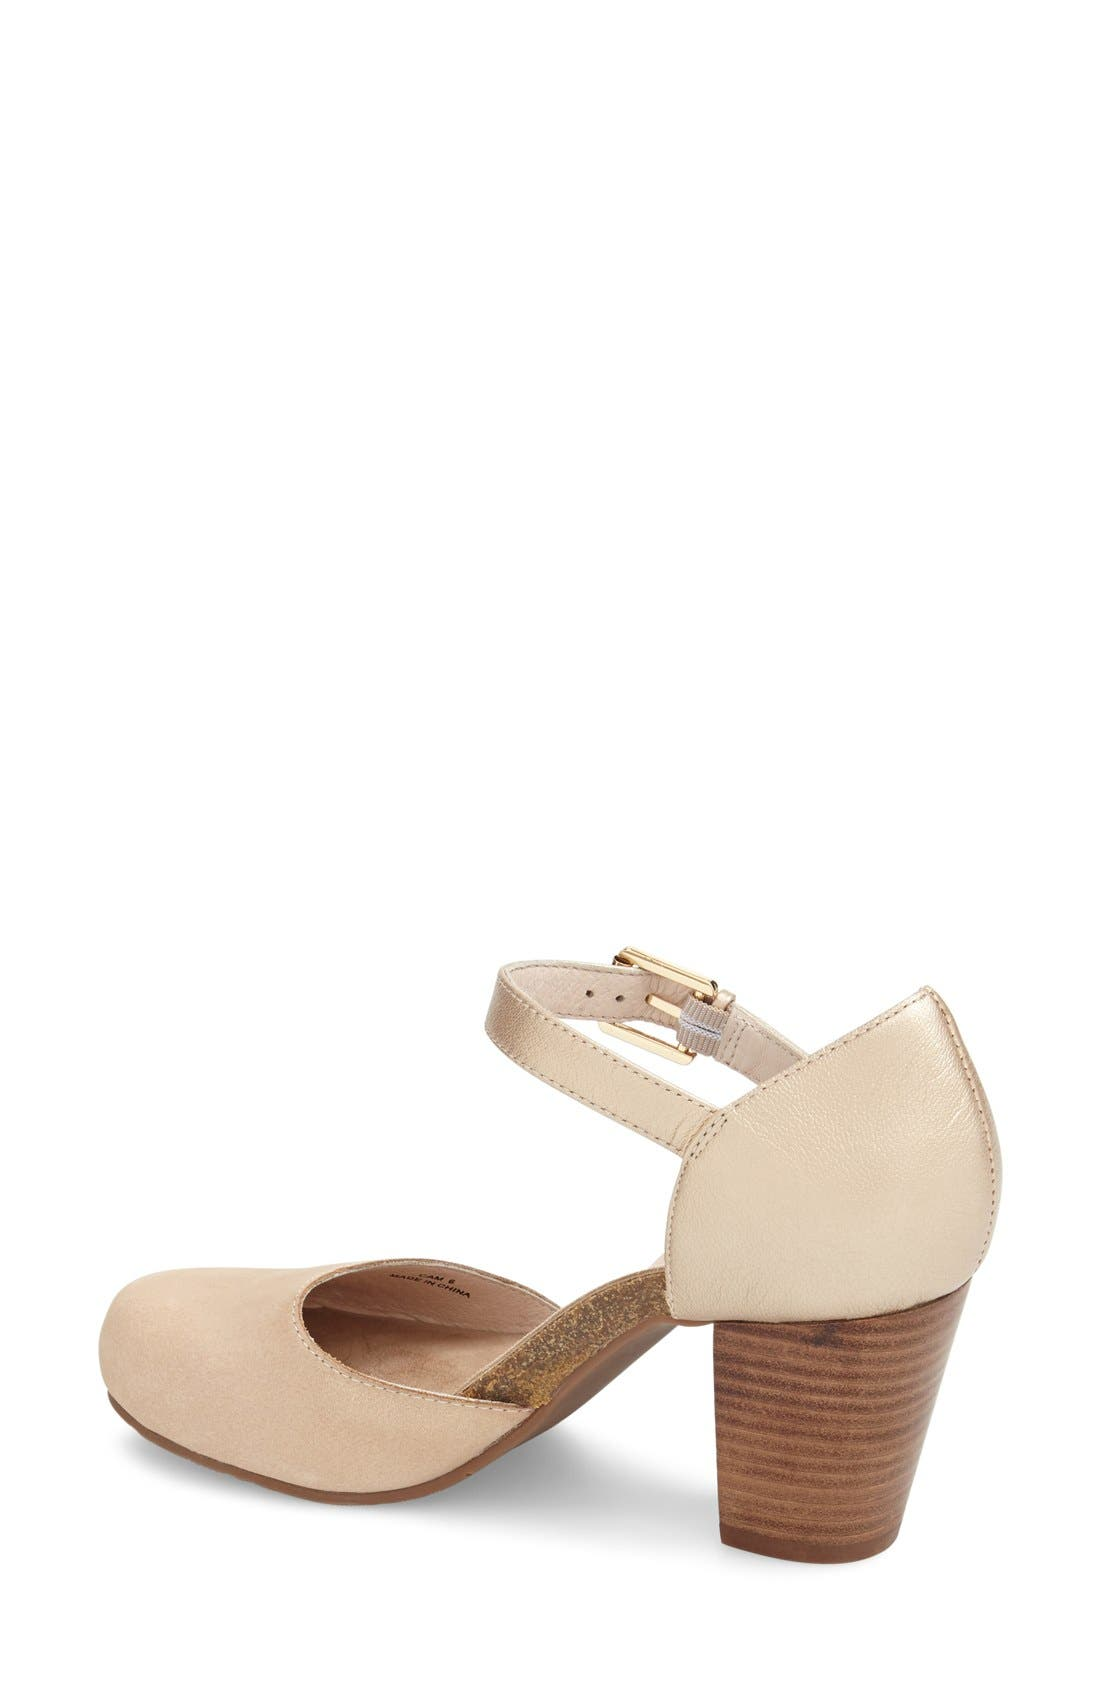 'Cam' Mary Jane Pump,                             Alternate thumbnail 2, color,                             Sand Leather